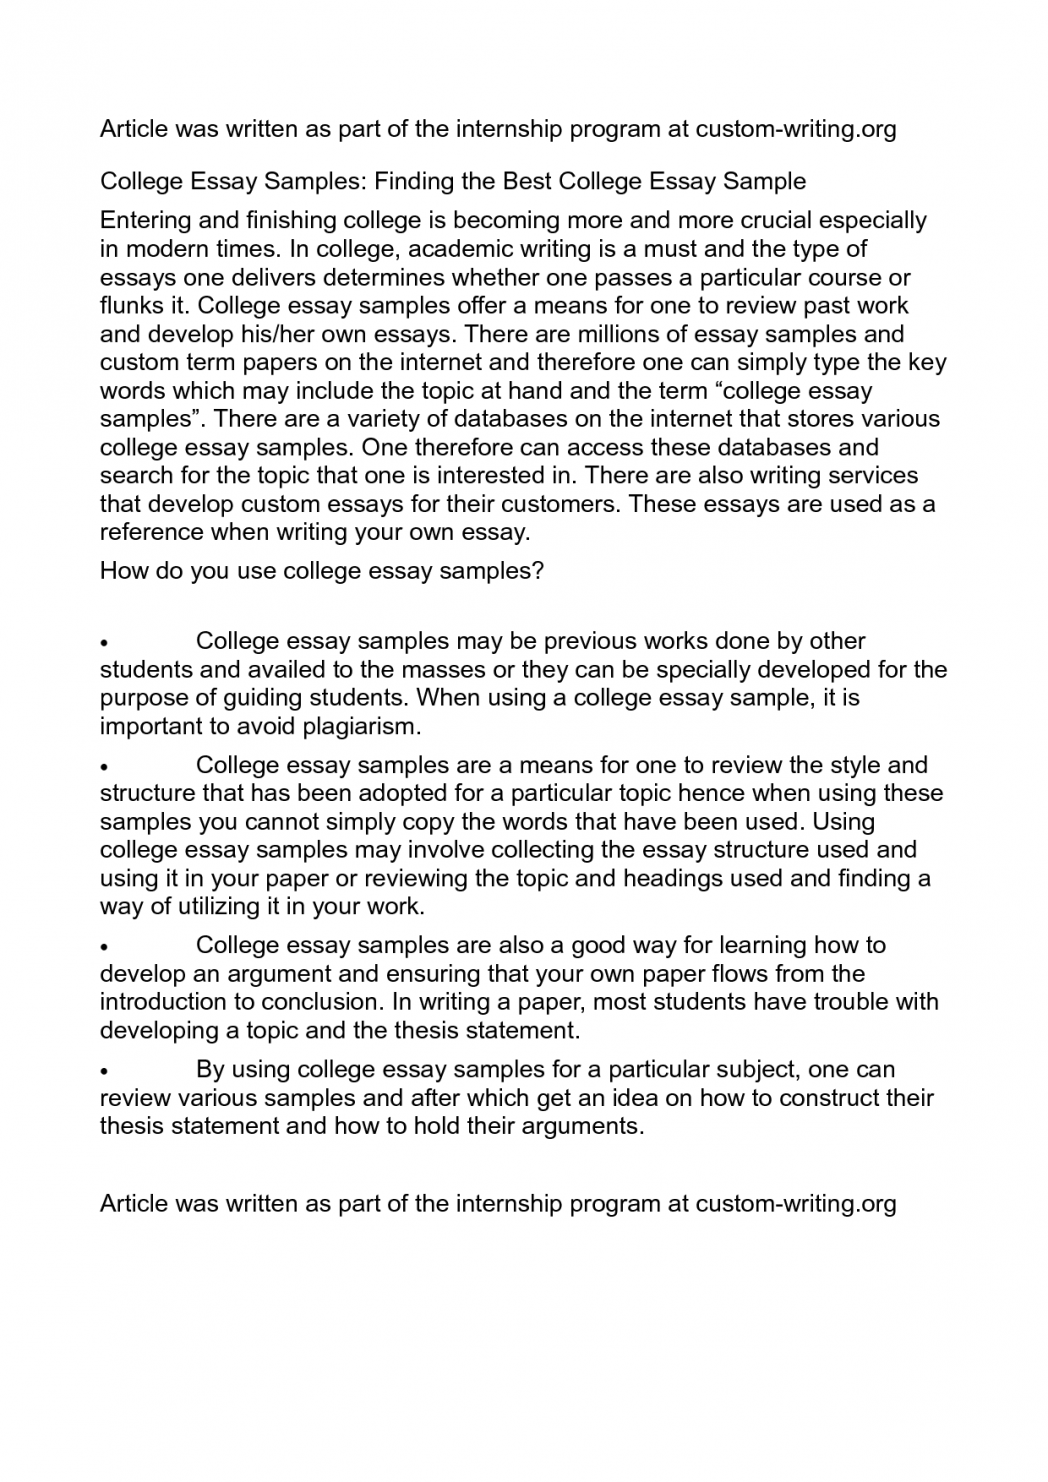 028 College Application Essays Samples Ideas Collection Good Simple Best Examp Topics To Write About Not 1048x1482 Shocking Essay Collections For Students 2017 Pdf Full